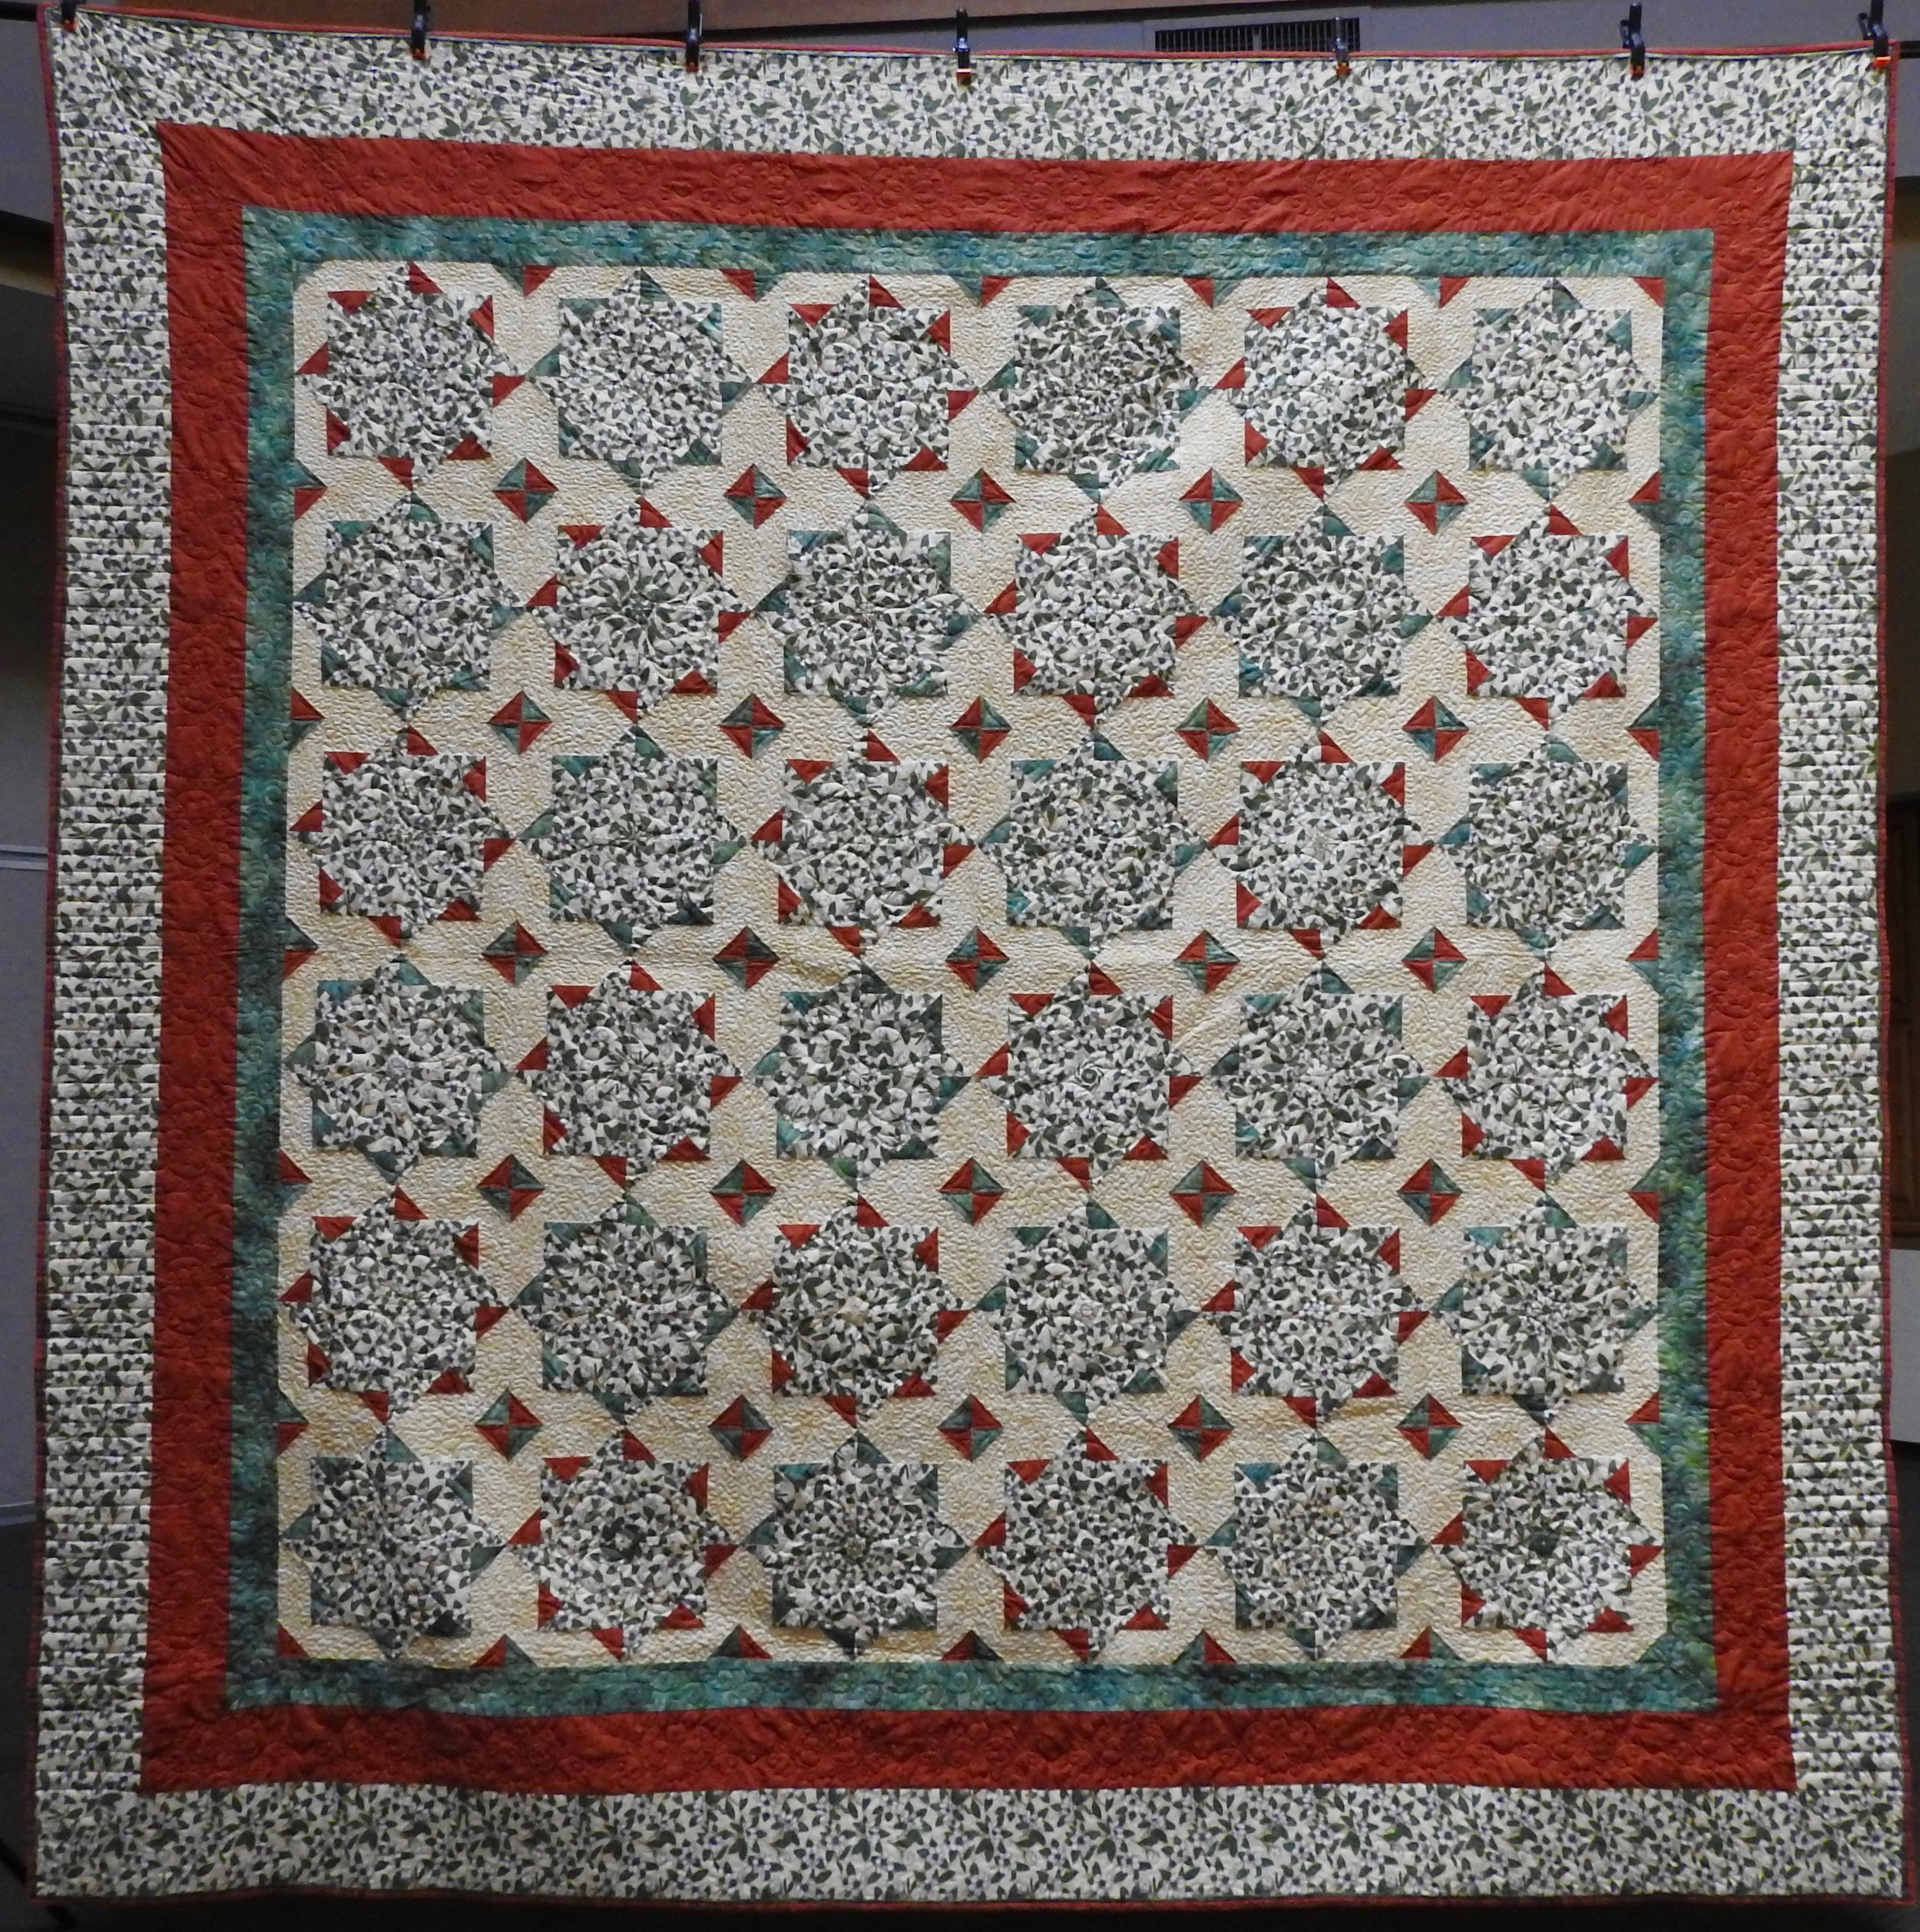 Whack 'n Stack, Pieced by Jean Mann Graber, Custom Machine Quilted, donated by the Cal Graber Family, 116 x 118""